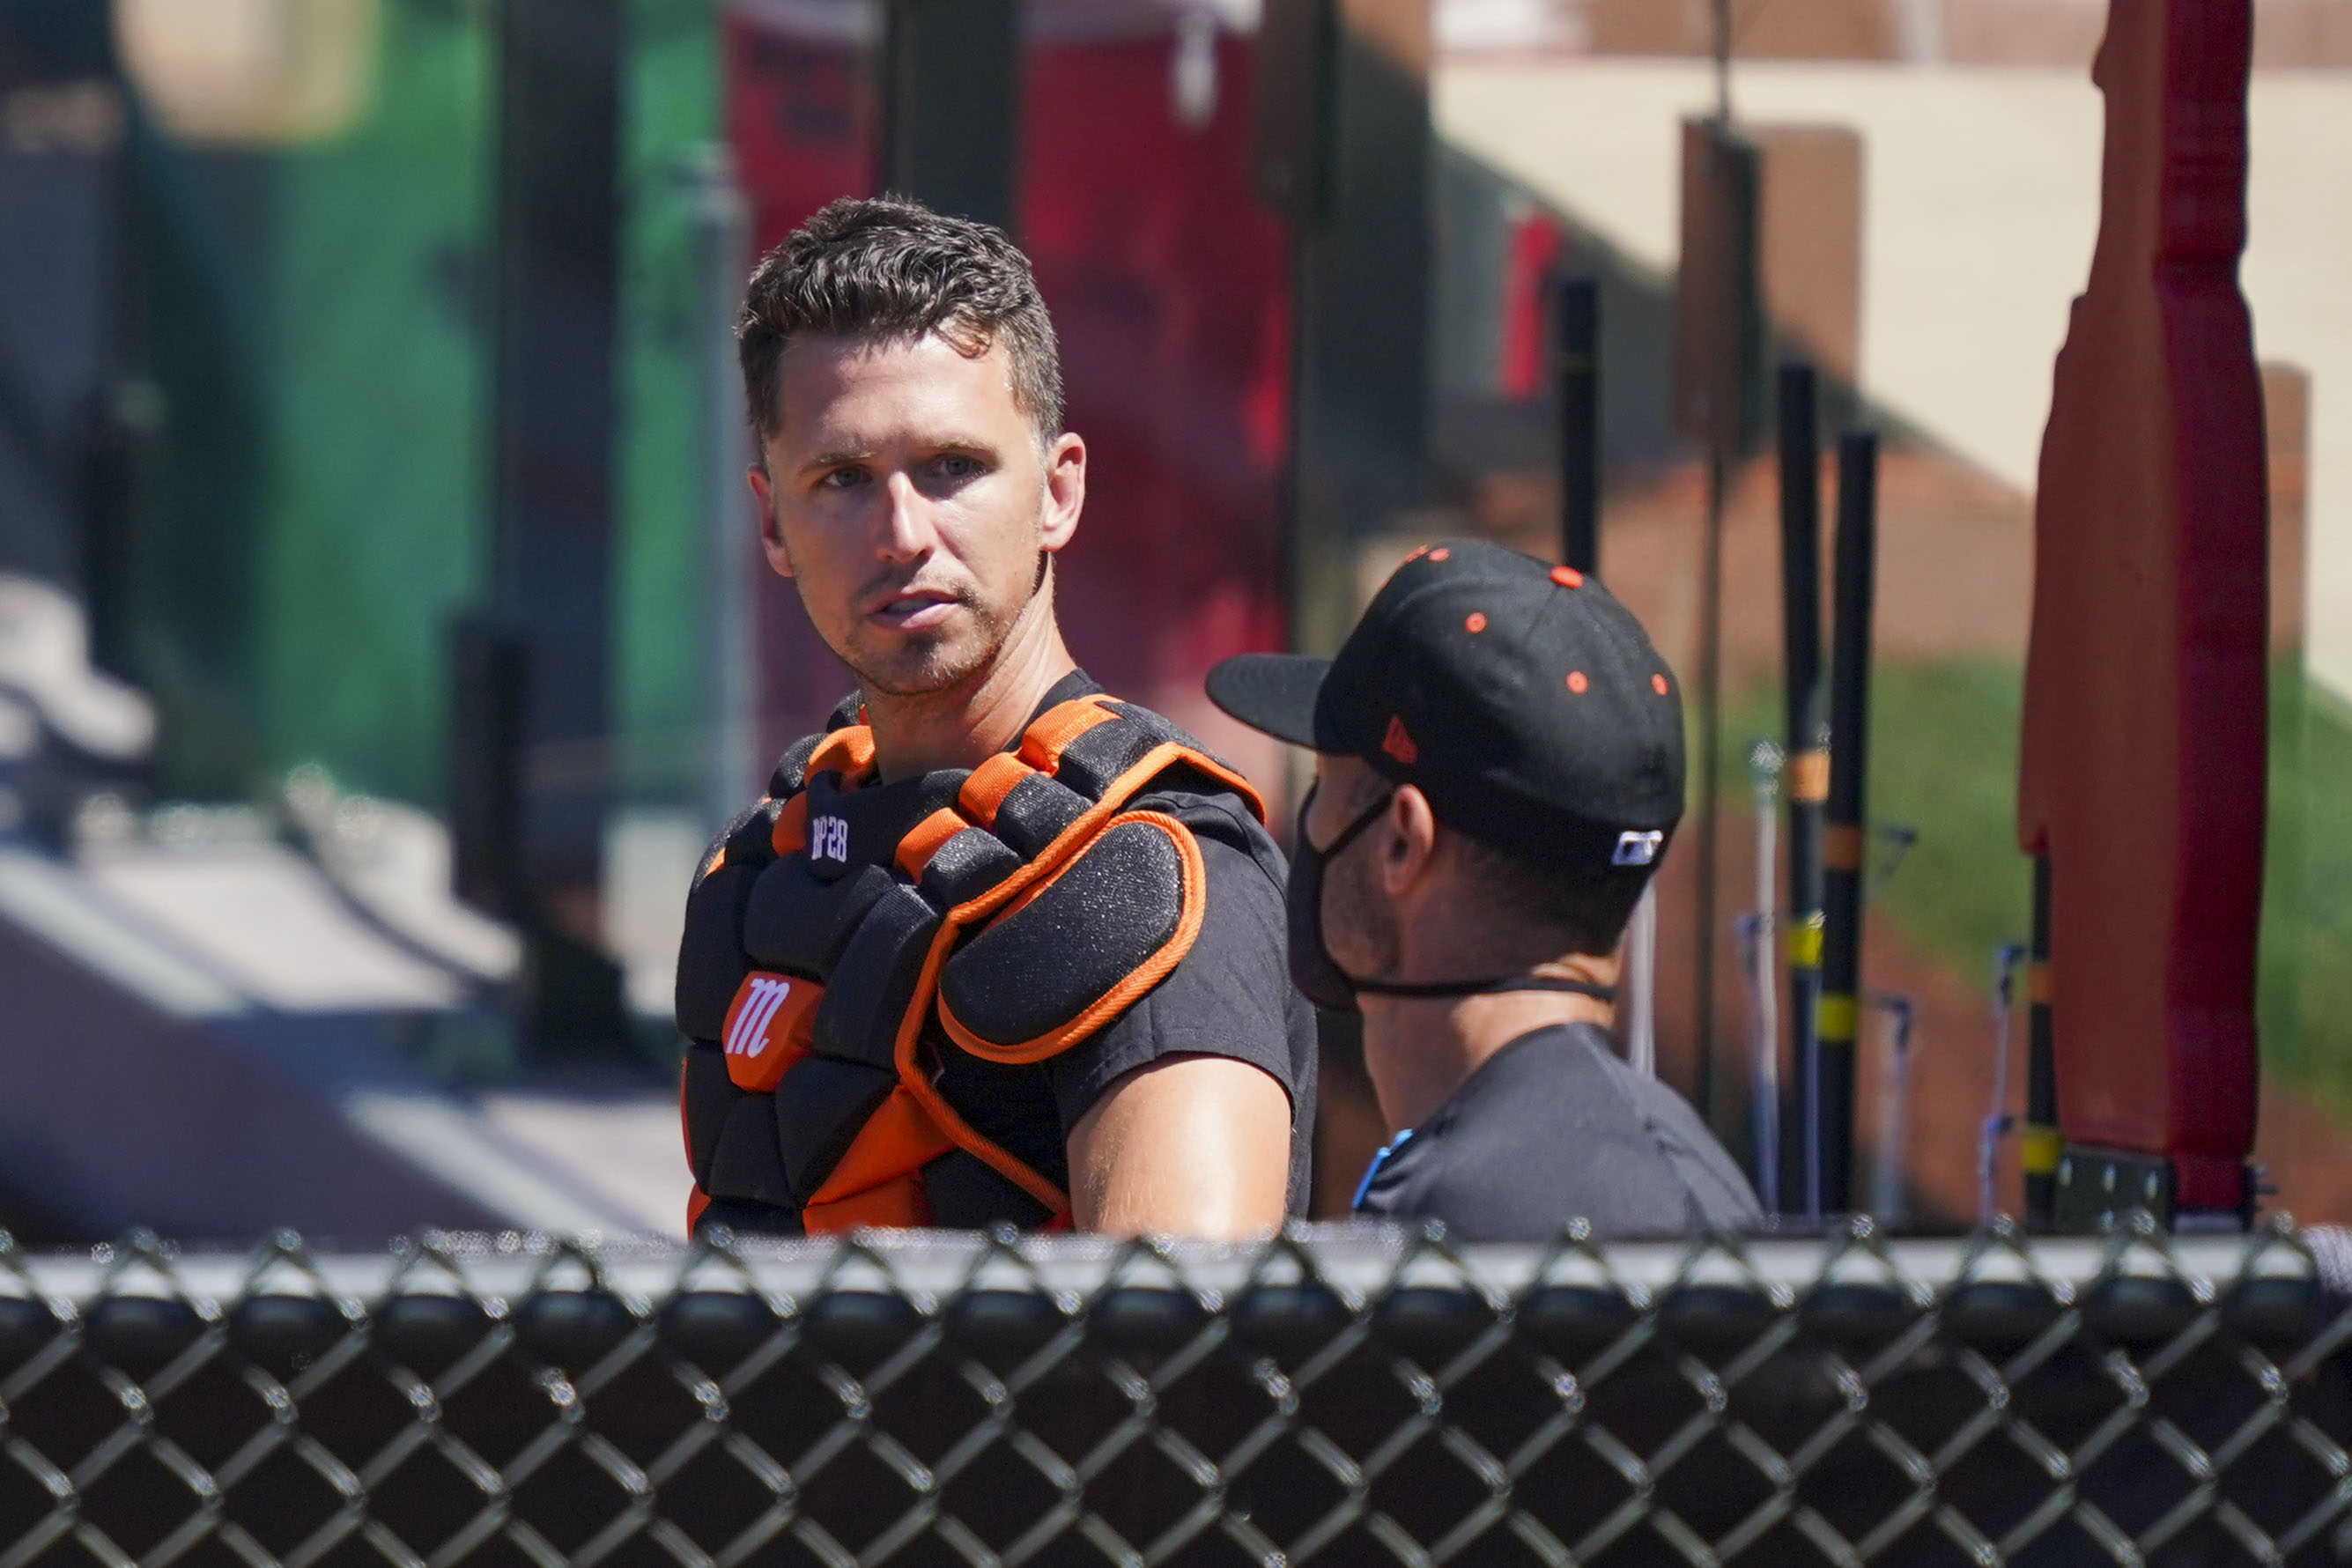 Giants season review: It was a rare down year behind the plate